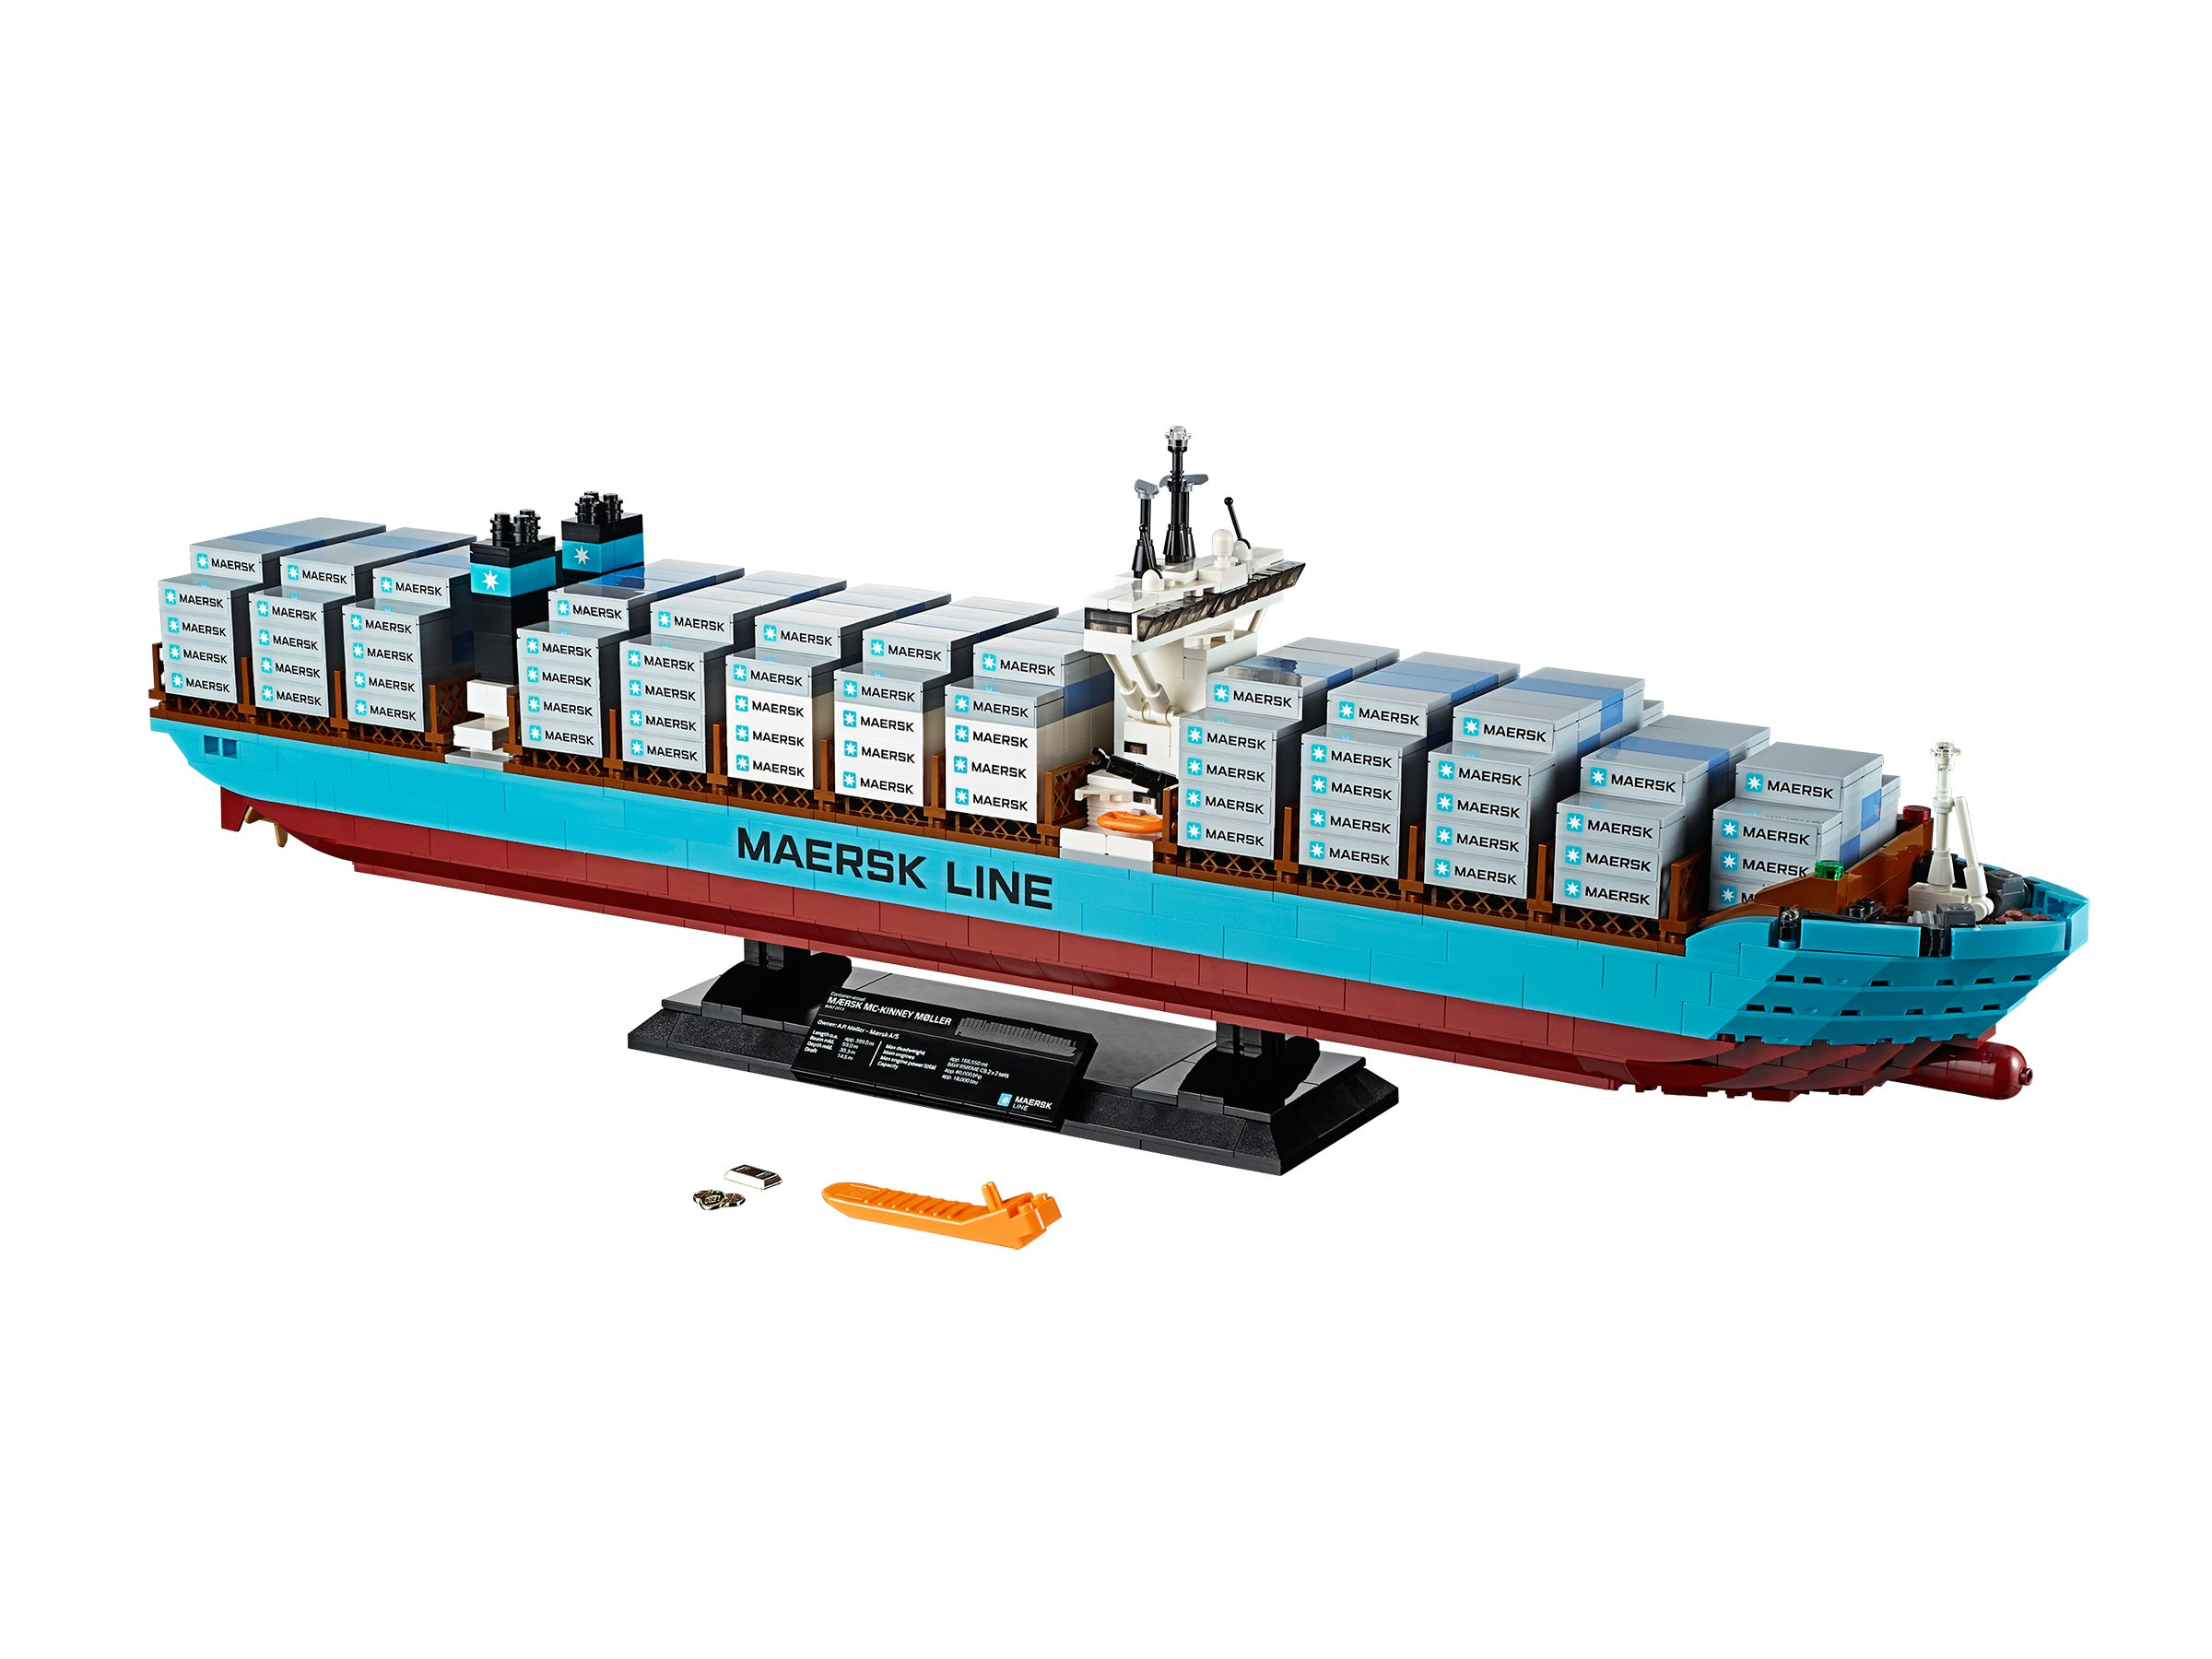 LEGO Advanced Models 10241 Maersk Containerschiff LEGO_10241.jpg